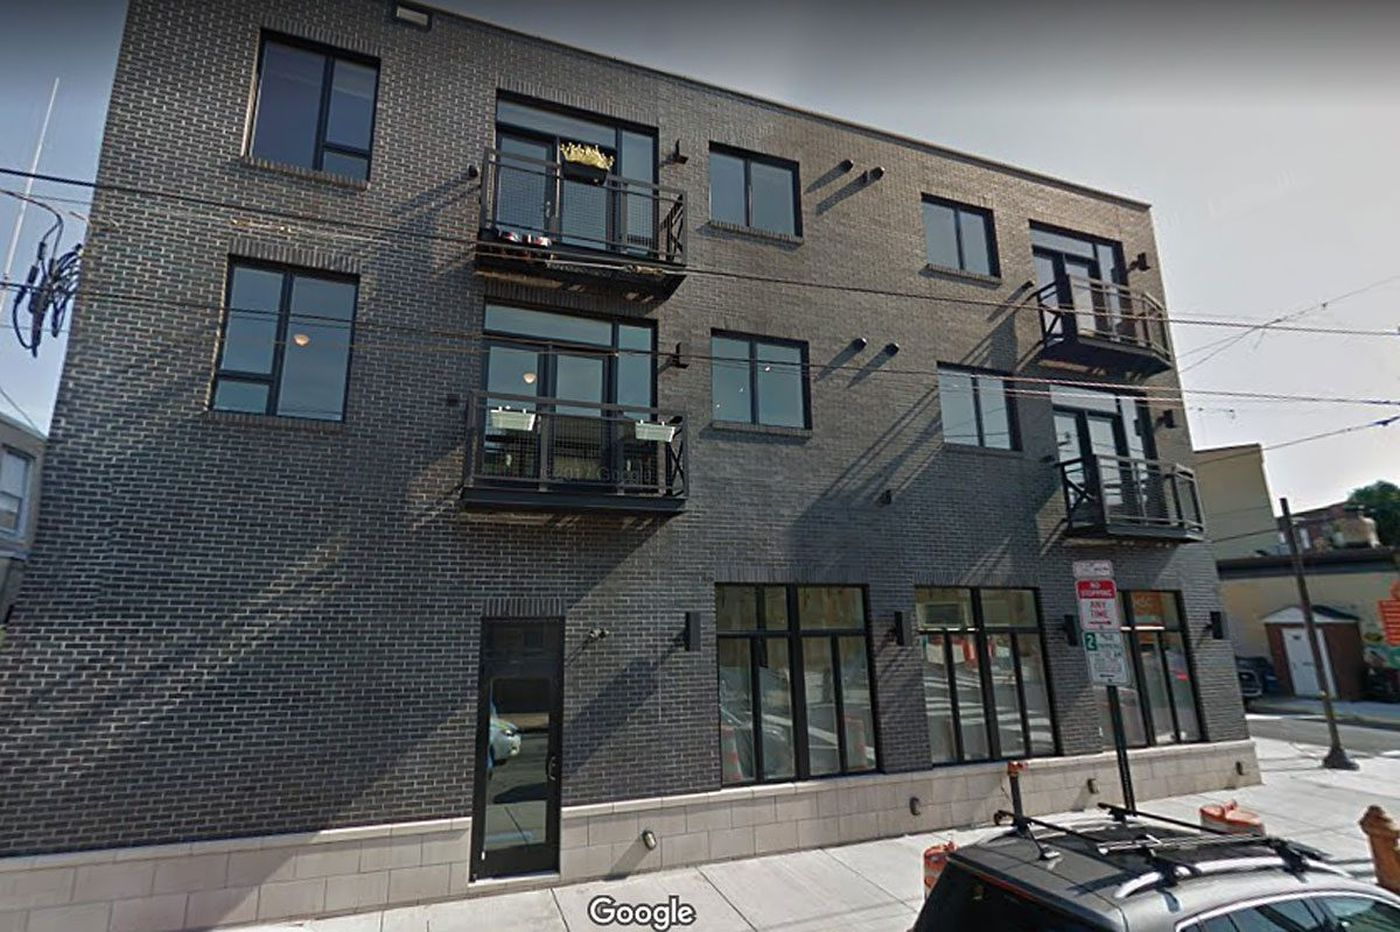 Easton brewer signs lease for bar off East Passyunk